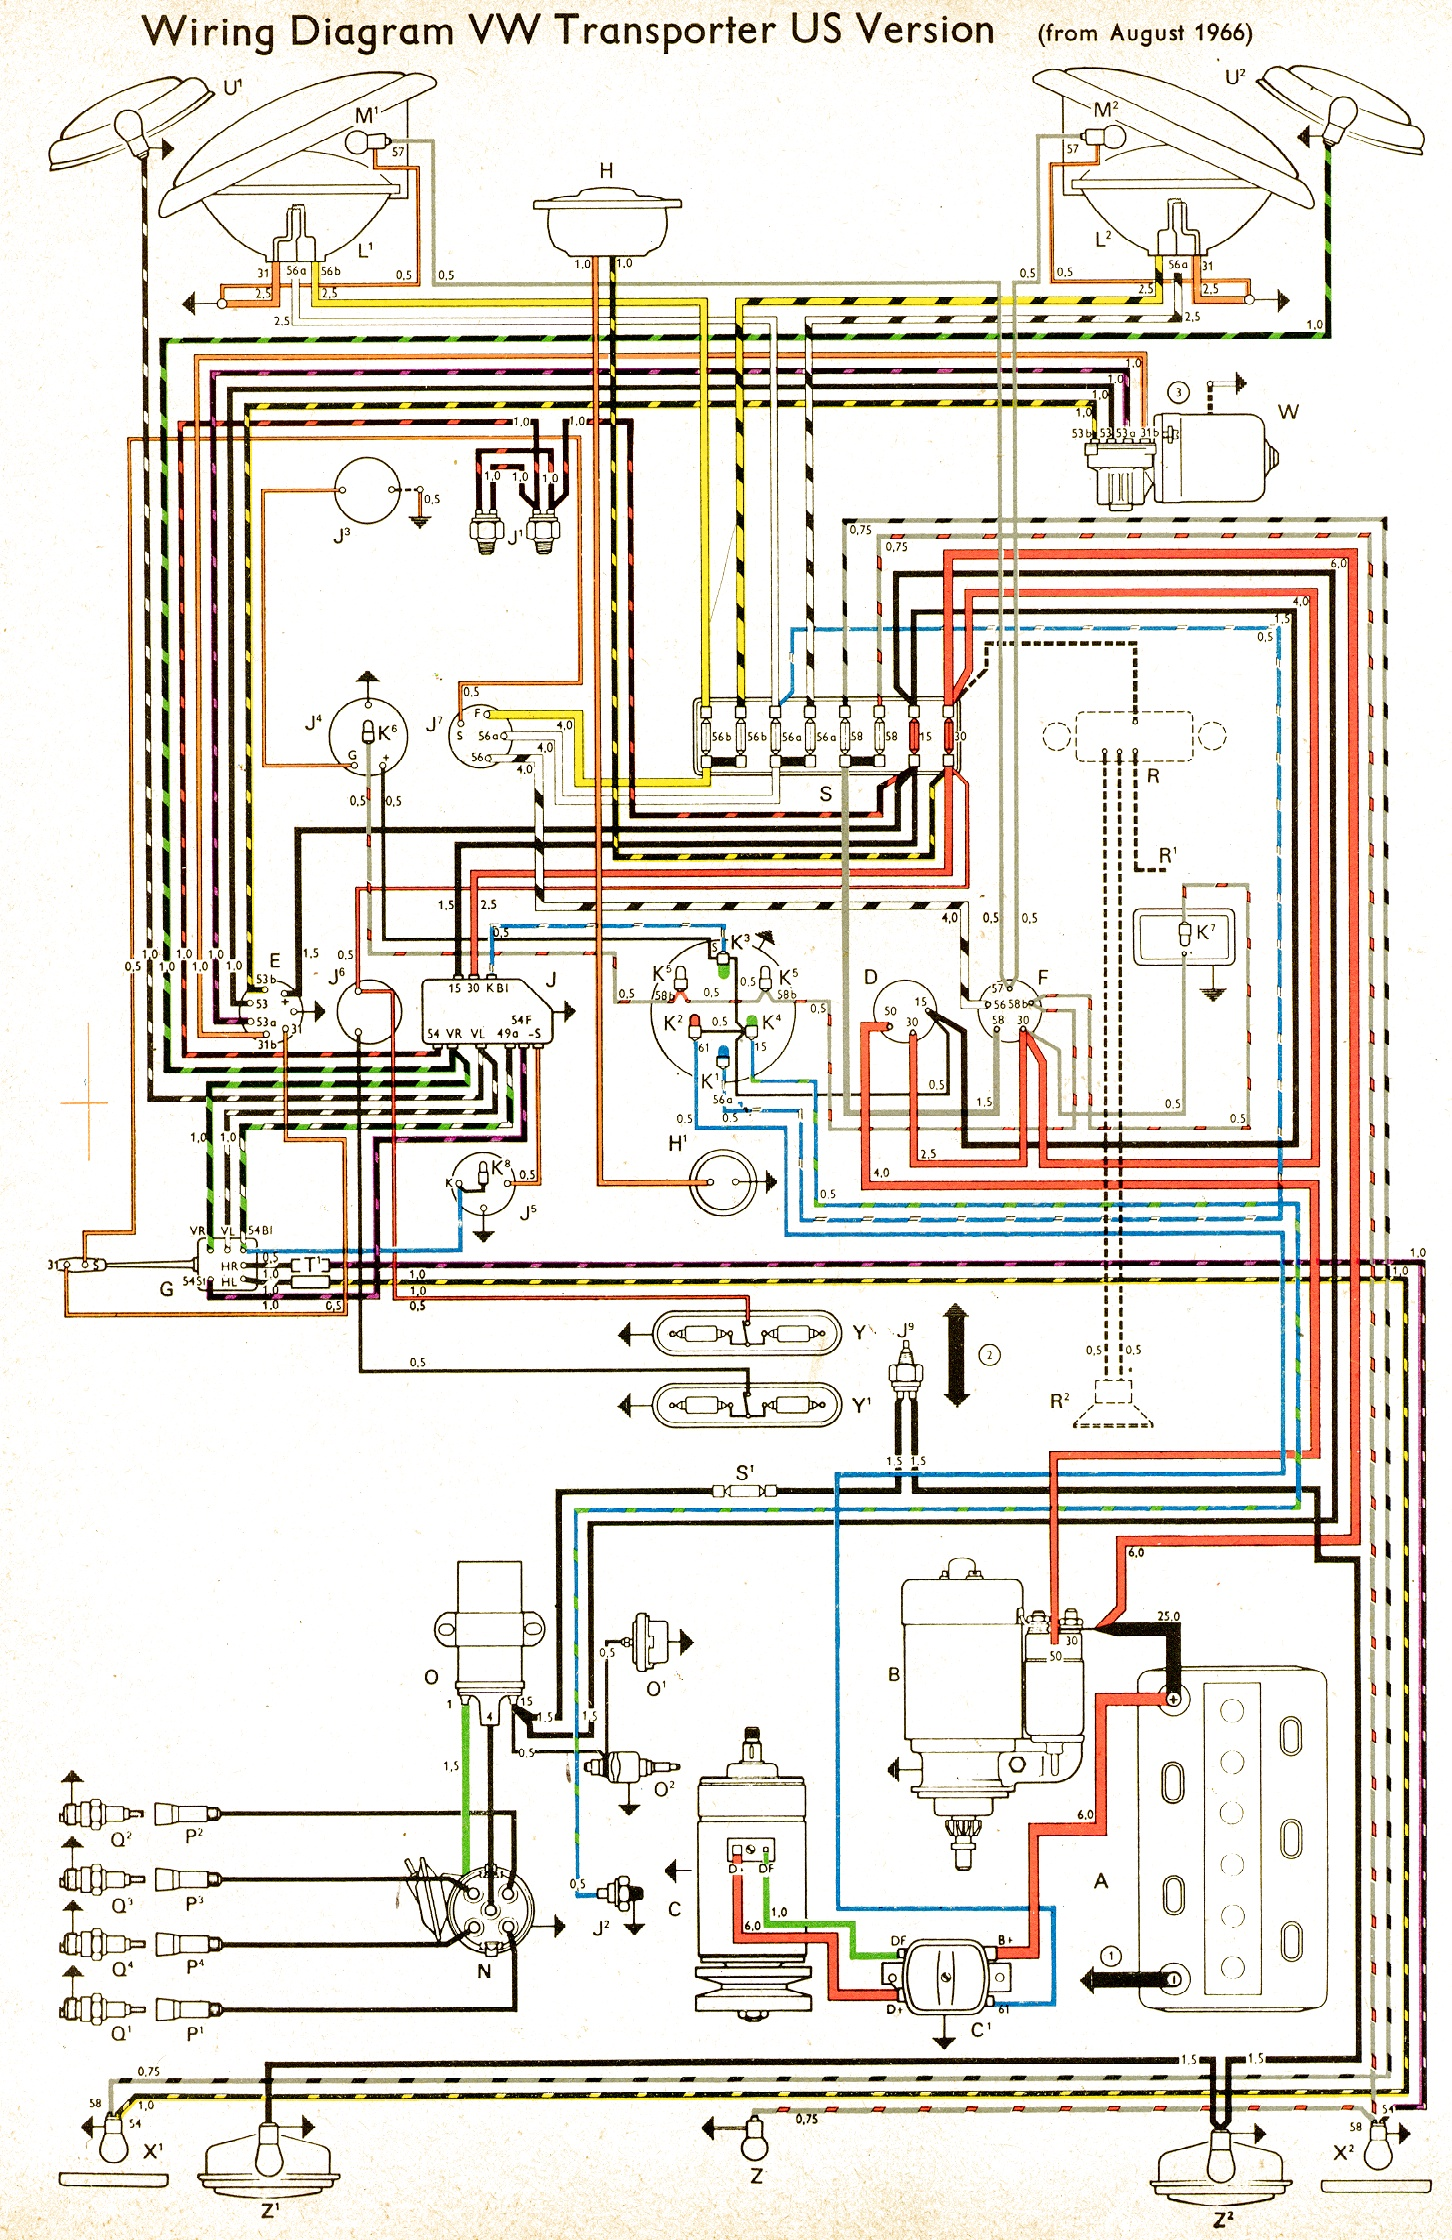 65 vw wiring diagram wiring diagram automotive rh wx44 autoservice oezder de